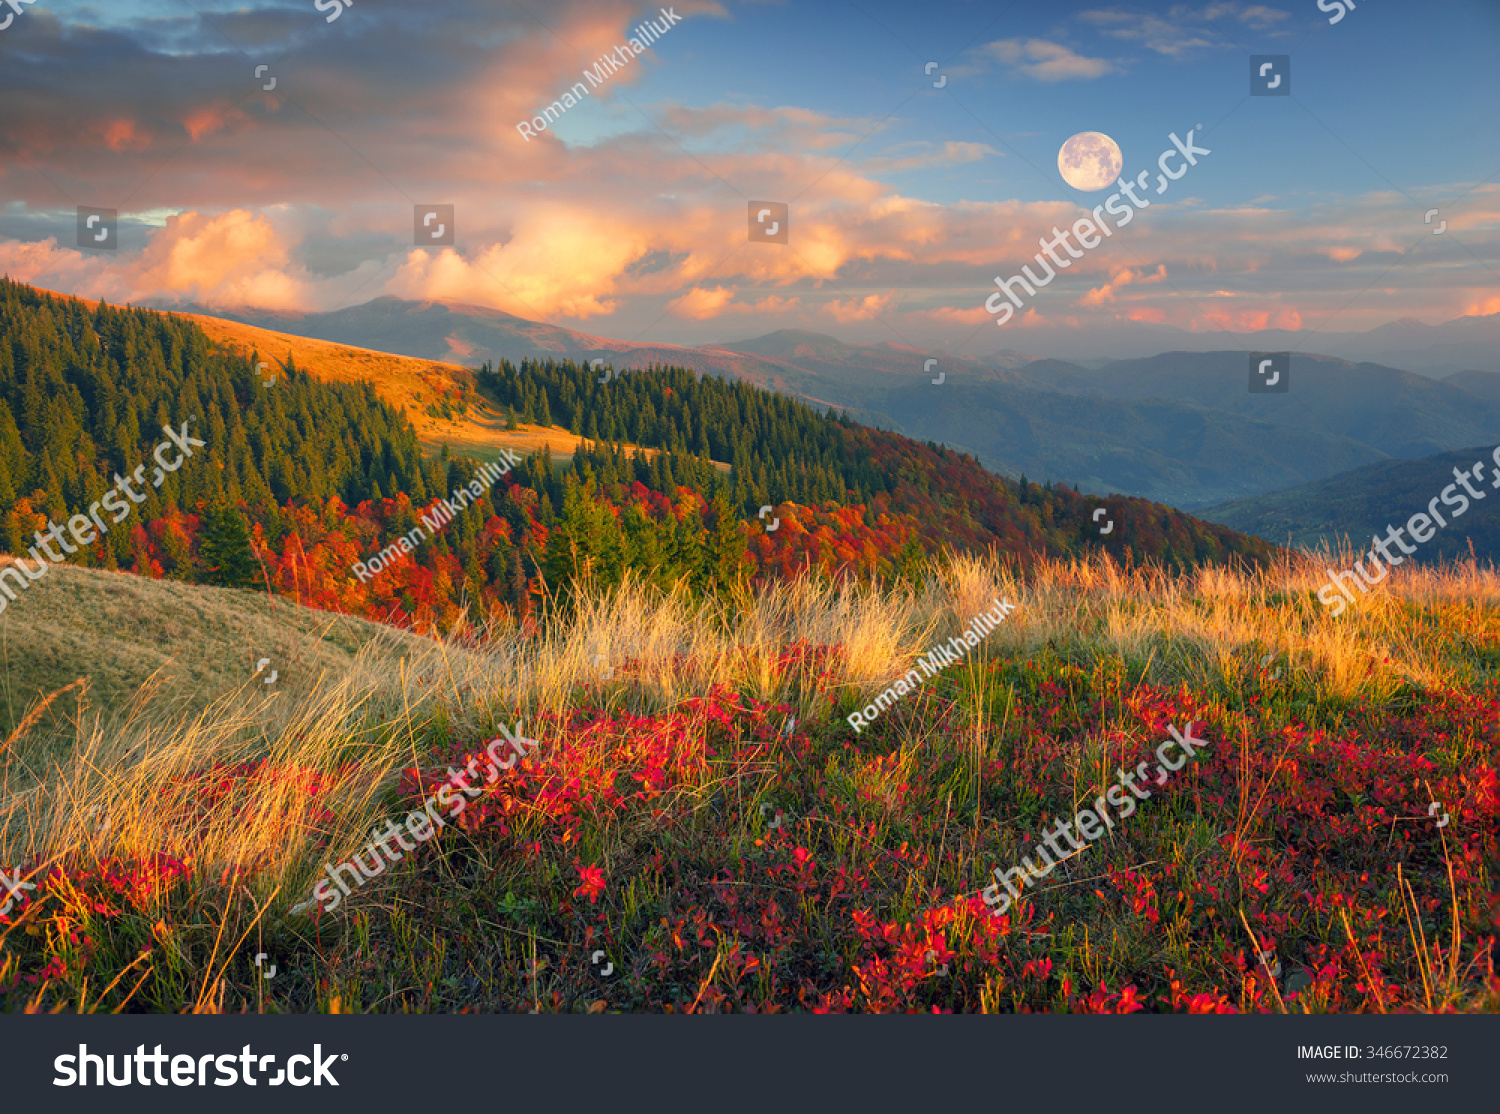 In the Carpathians golden autumn cold often turns into snow and then again come warm sunny days Against the background of high mountain ranges and beautiful beech forests scenic